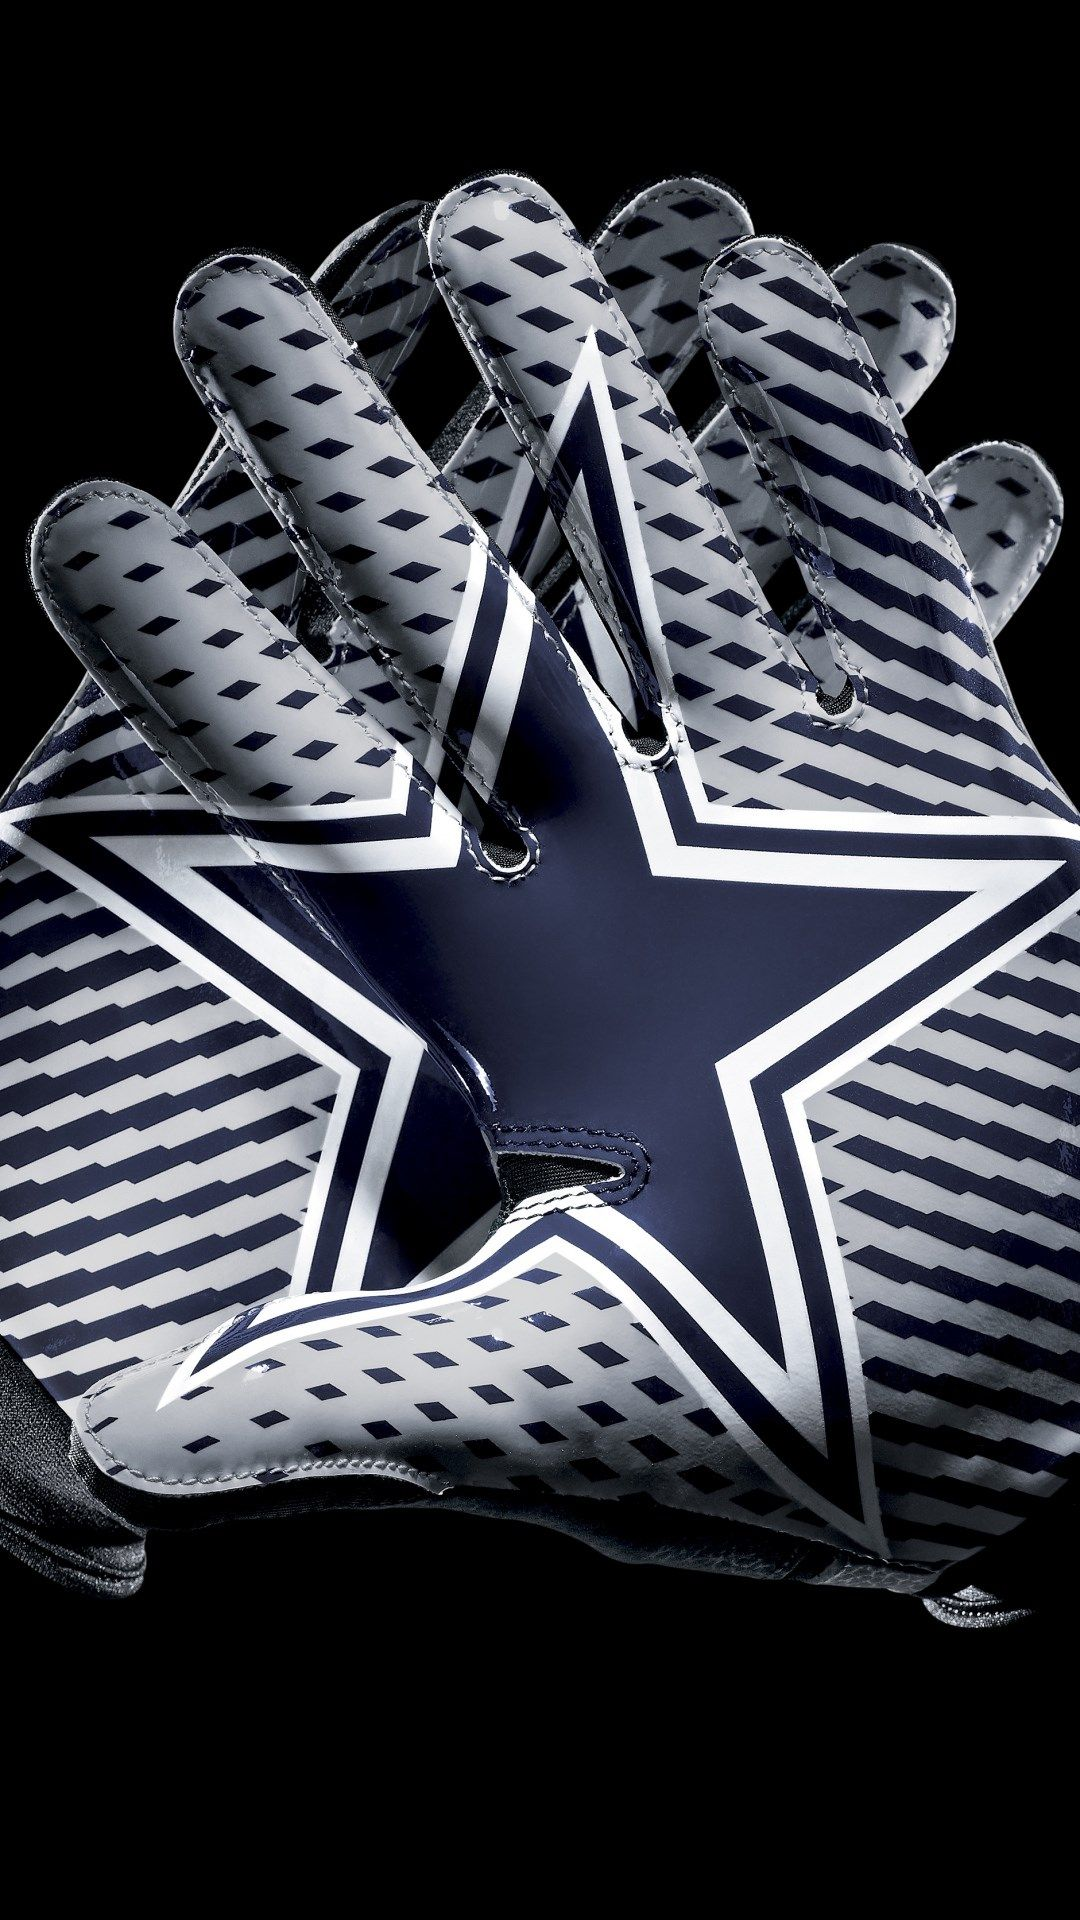 hd dallas cowboys iphone wallpaper Dallas cowboys